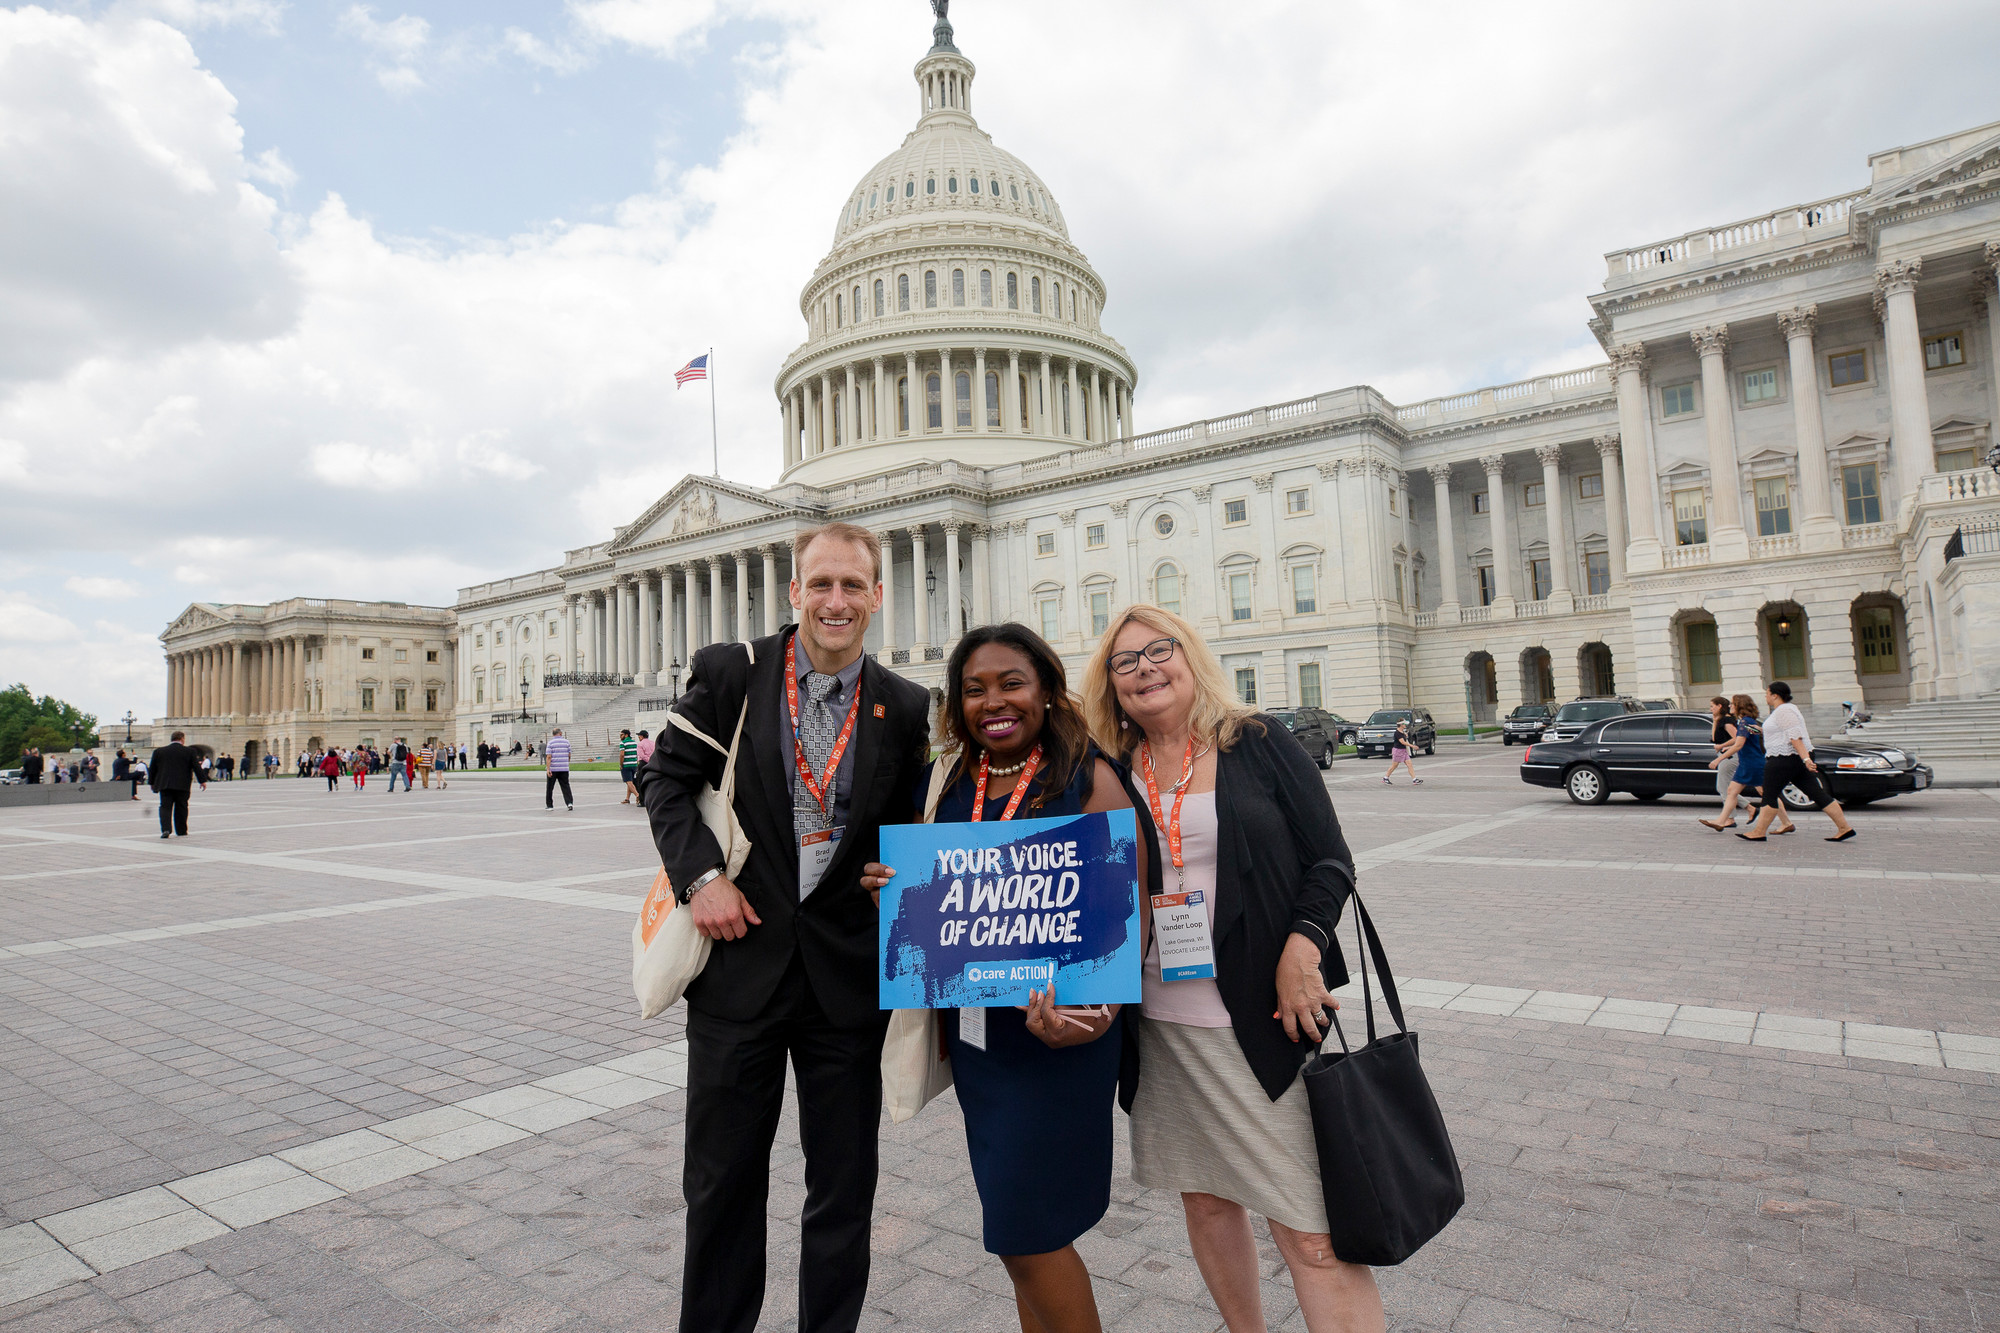 Three people stand in front of the U.S. Capitol